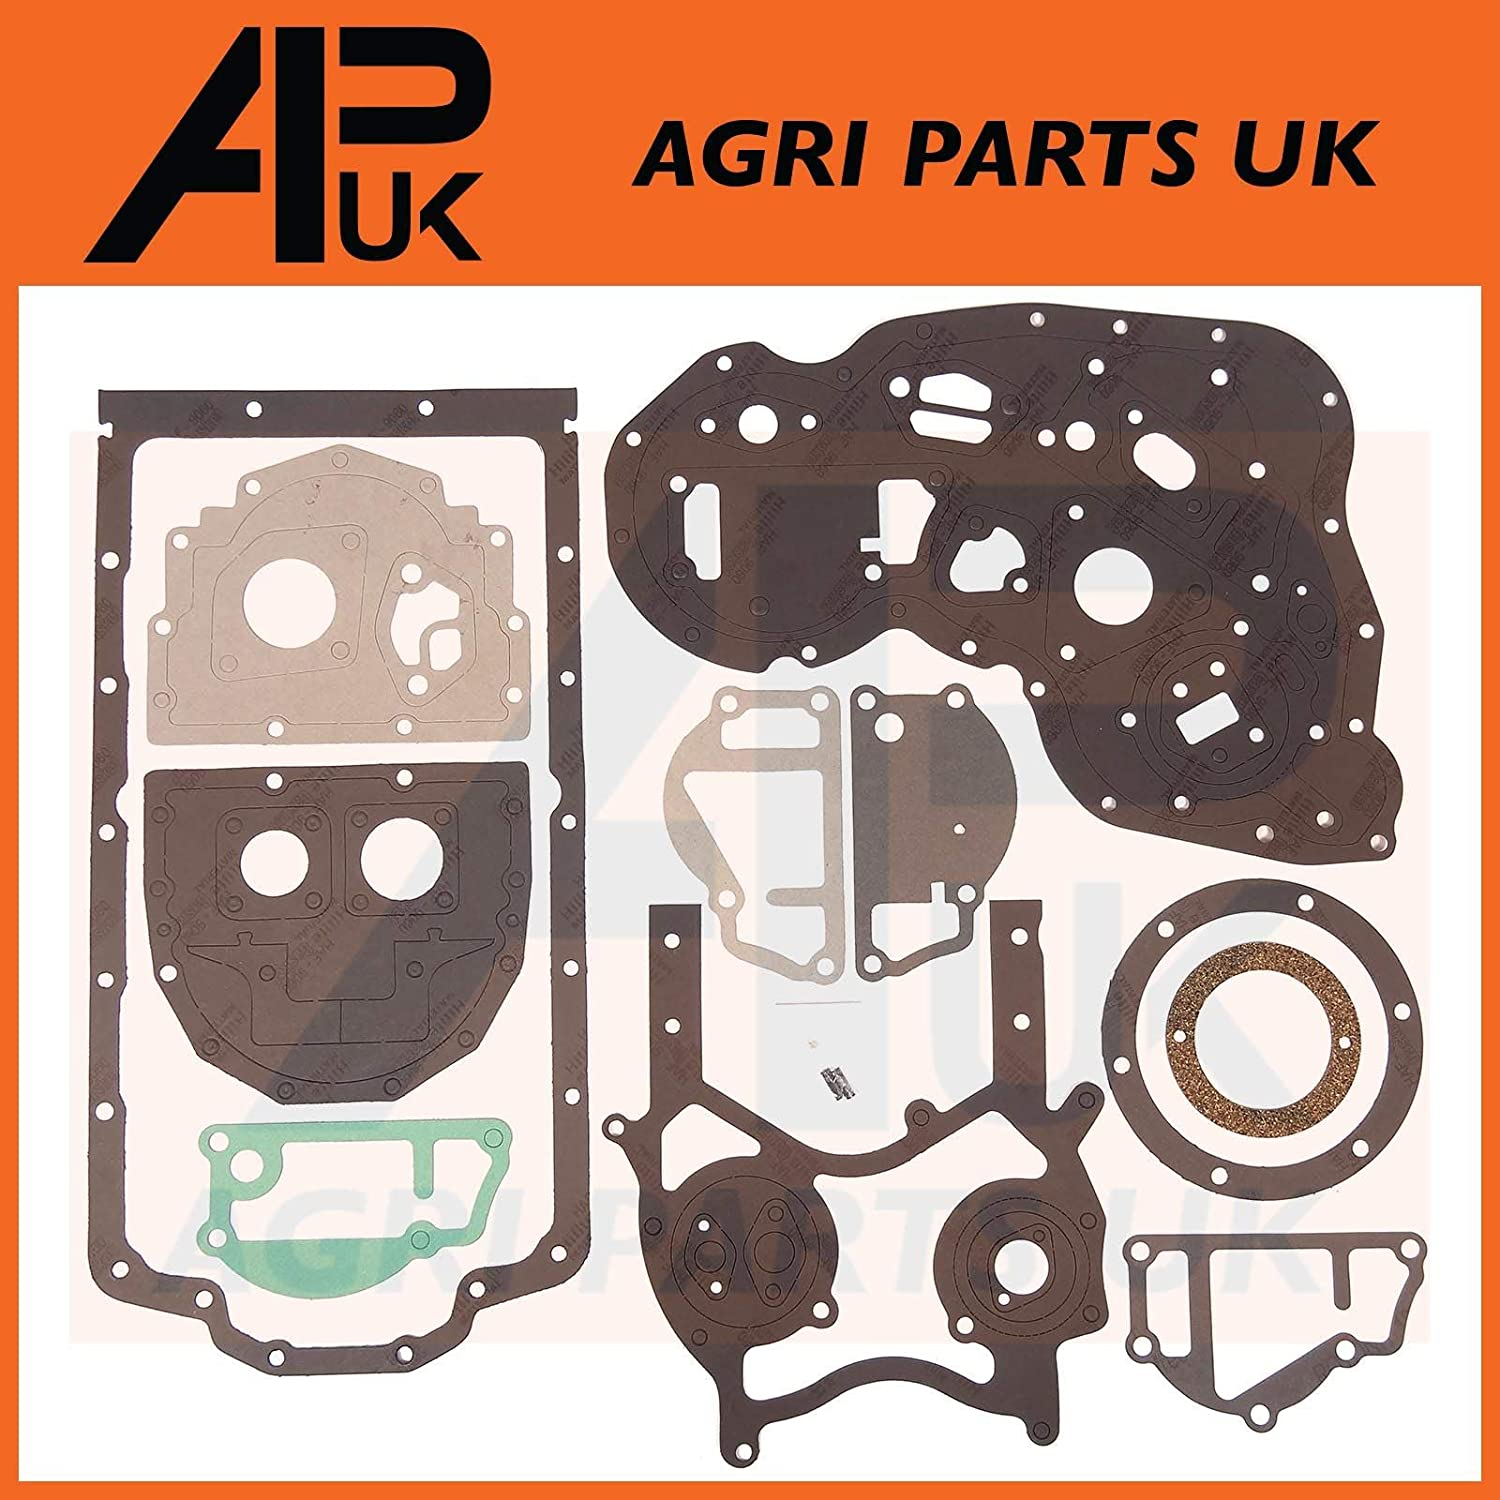 Lower Bottom Gasket set Compatible with Perkins Engine 4.236 4.248 A4.212 A4.236 AT4.236 A4.248